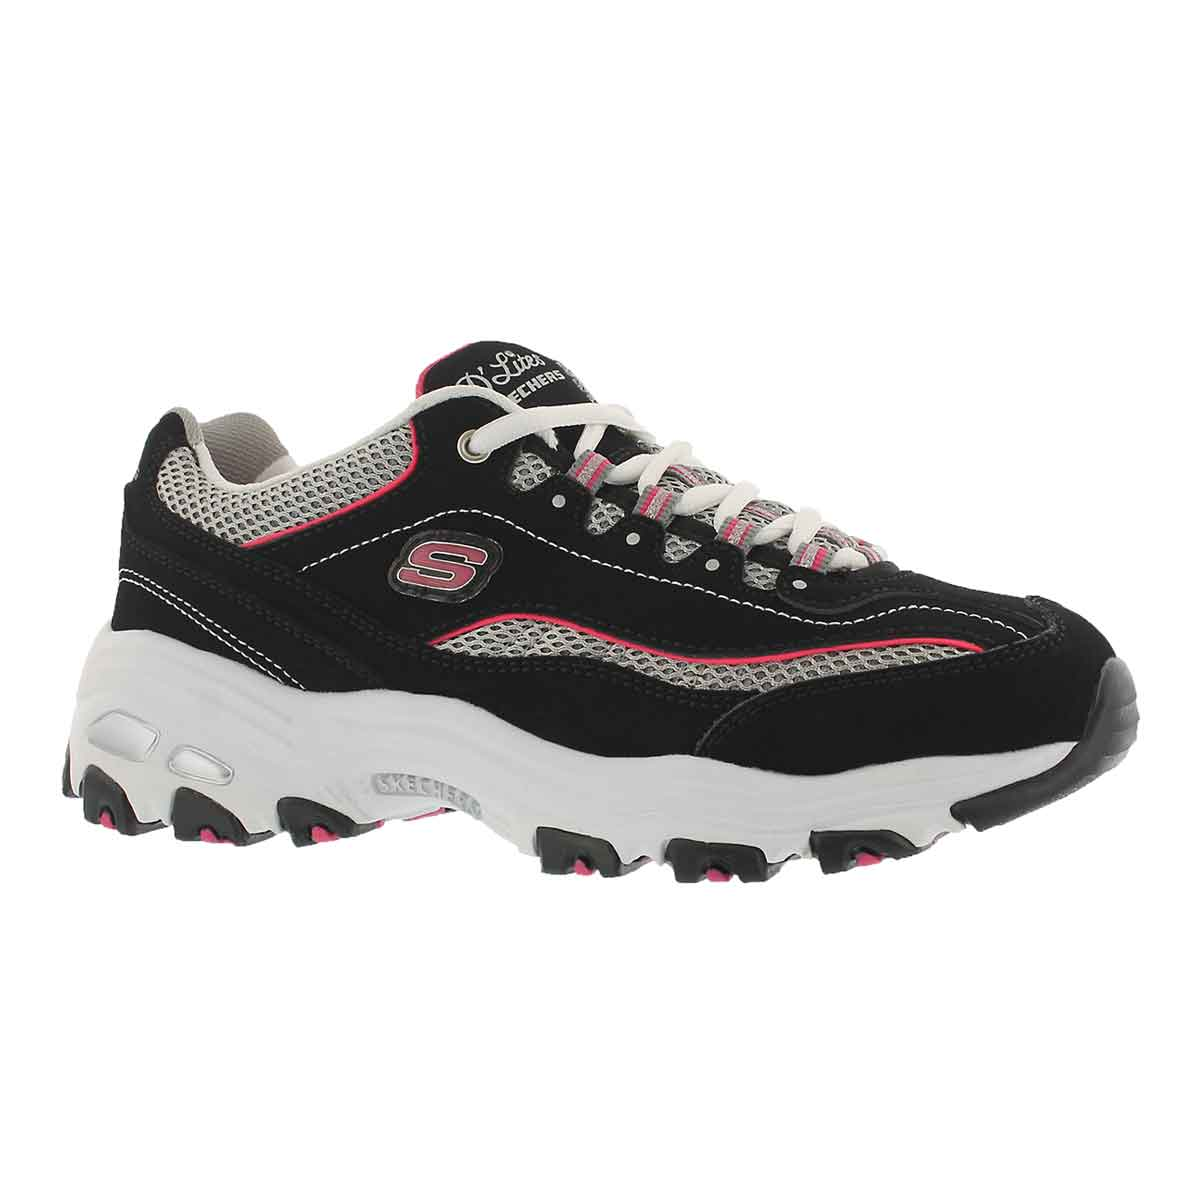 Women's D'LITES LIFE SAVER black/pink sneakers